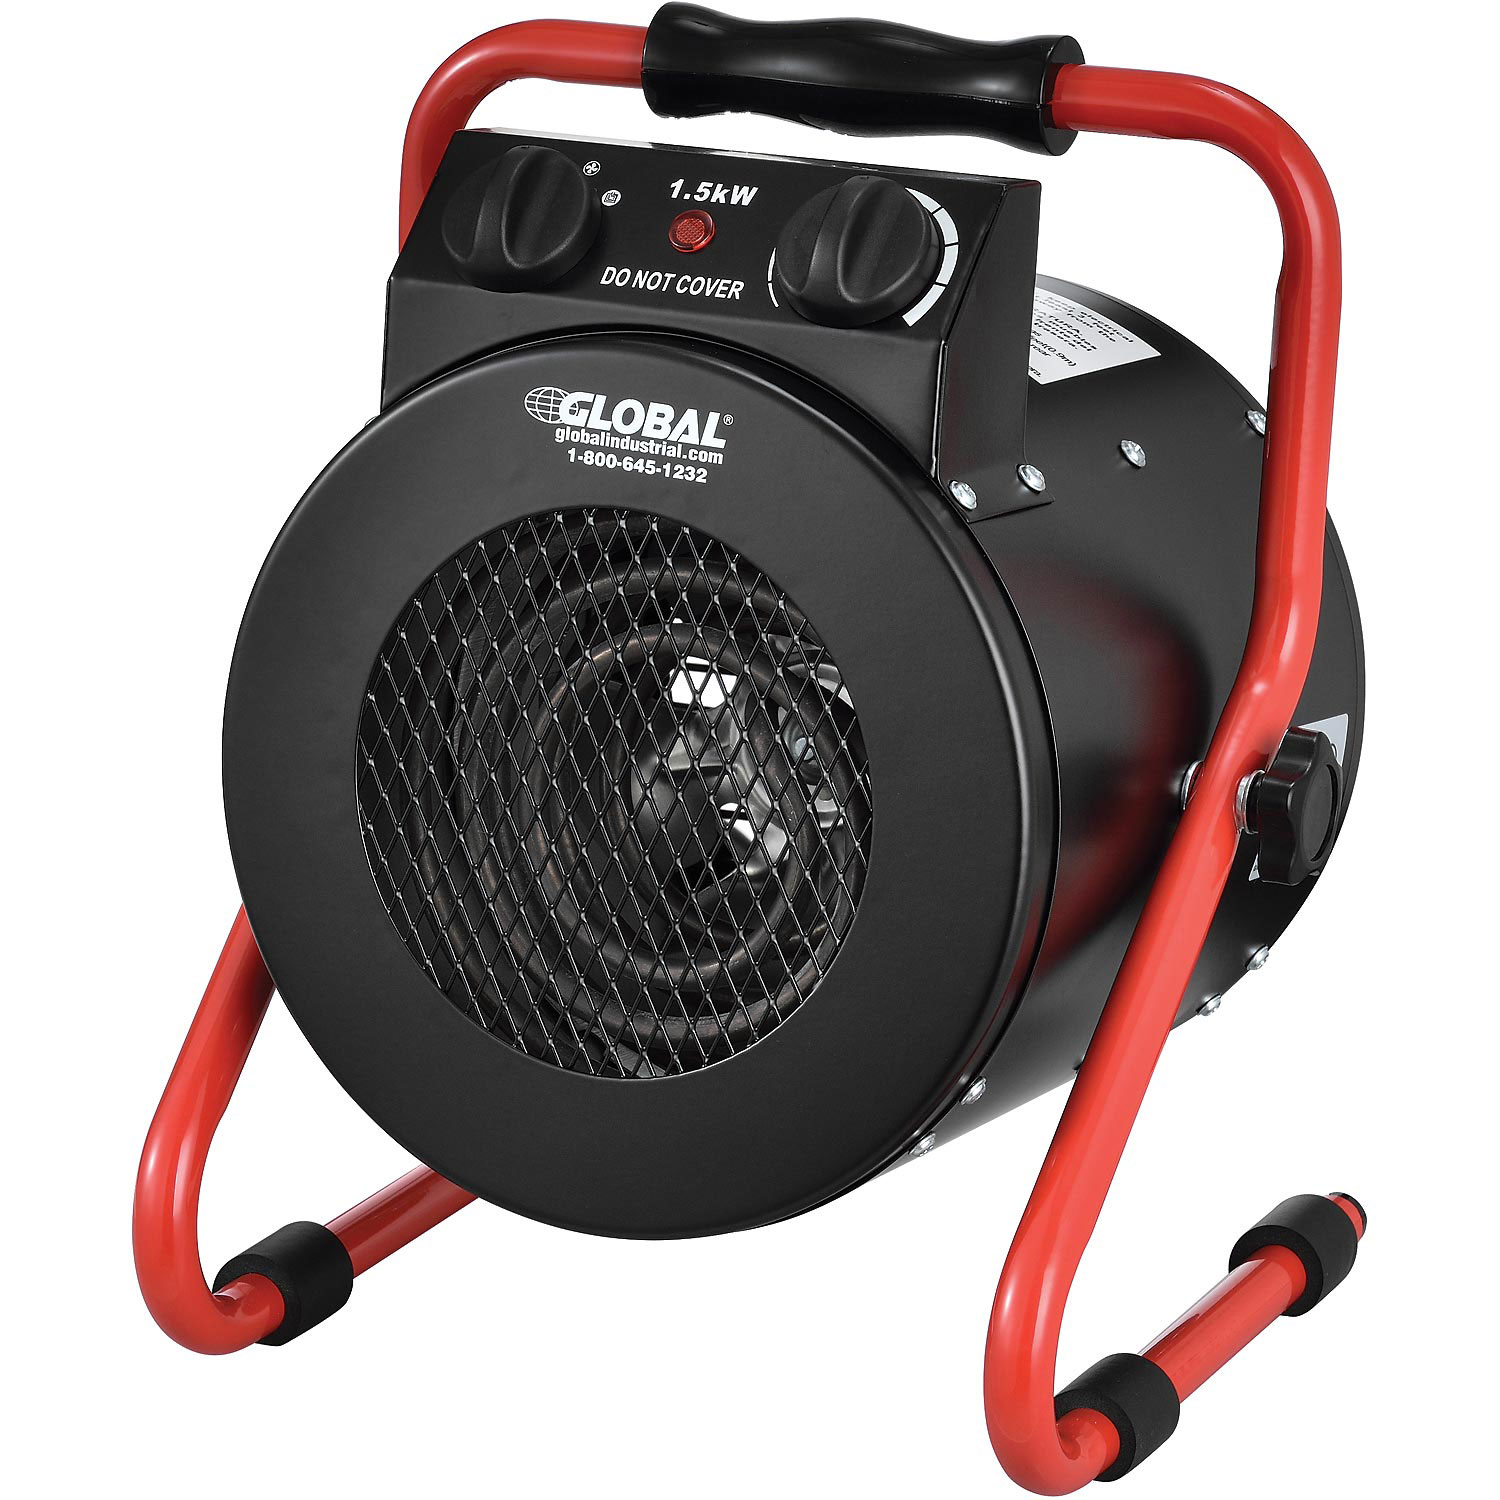 Portable Electric Garage Space Heater With Thermostat, 1500 watt, 120v, Red, Lot of 1